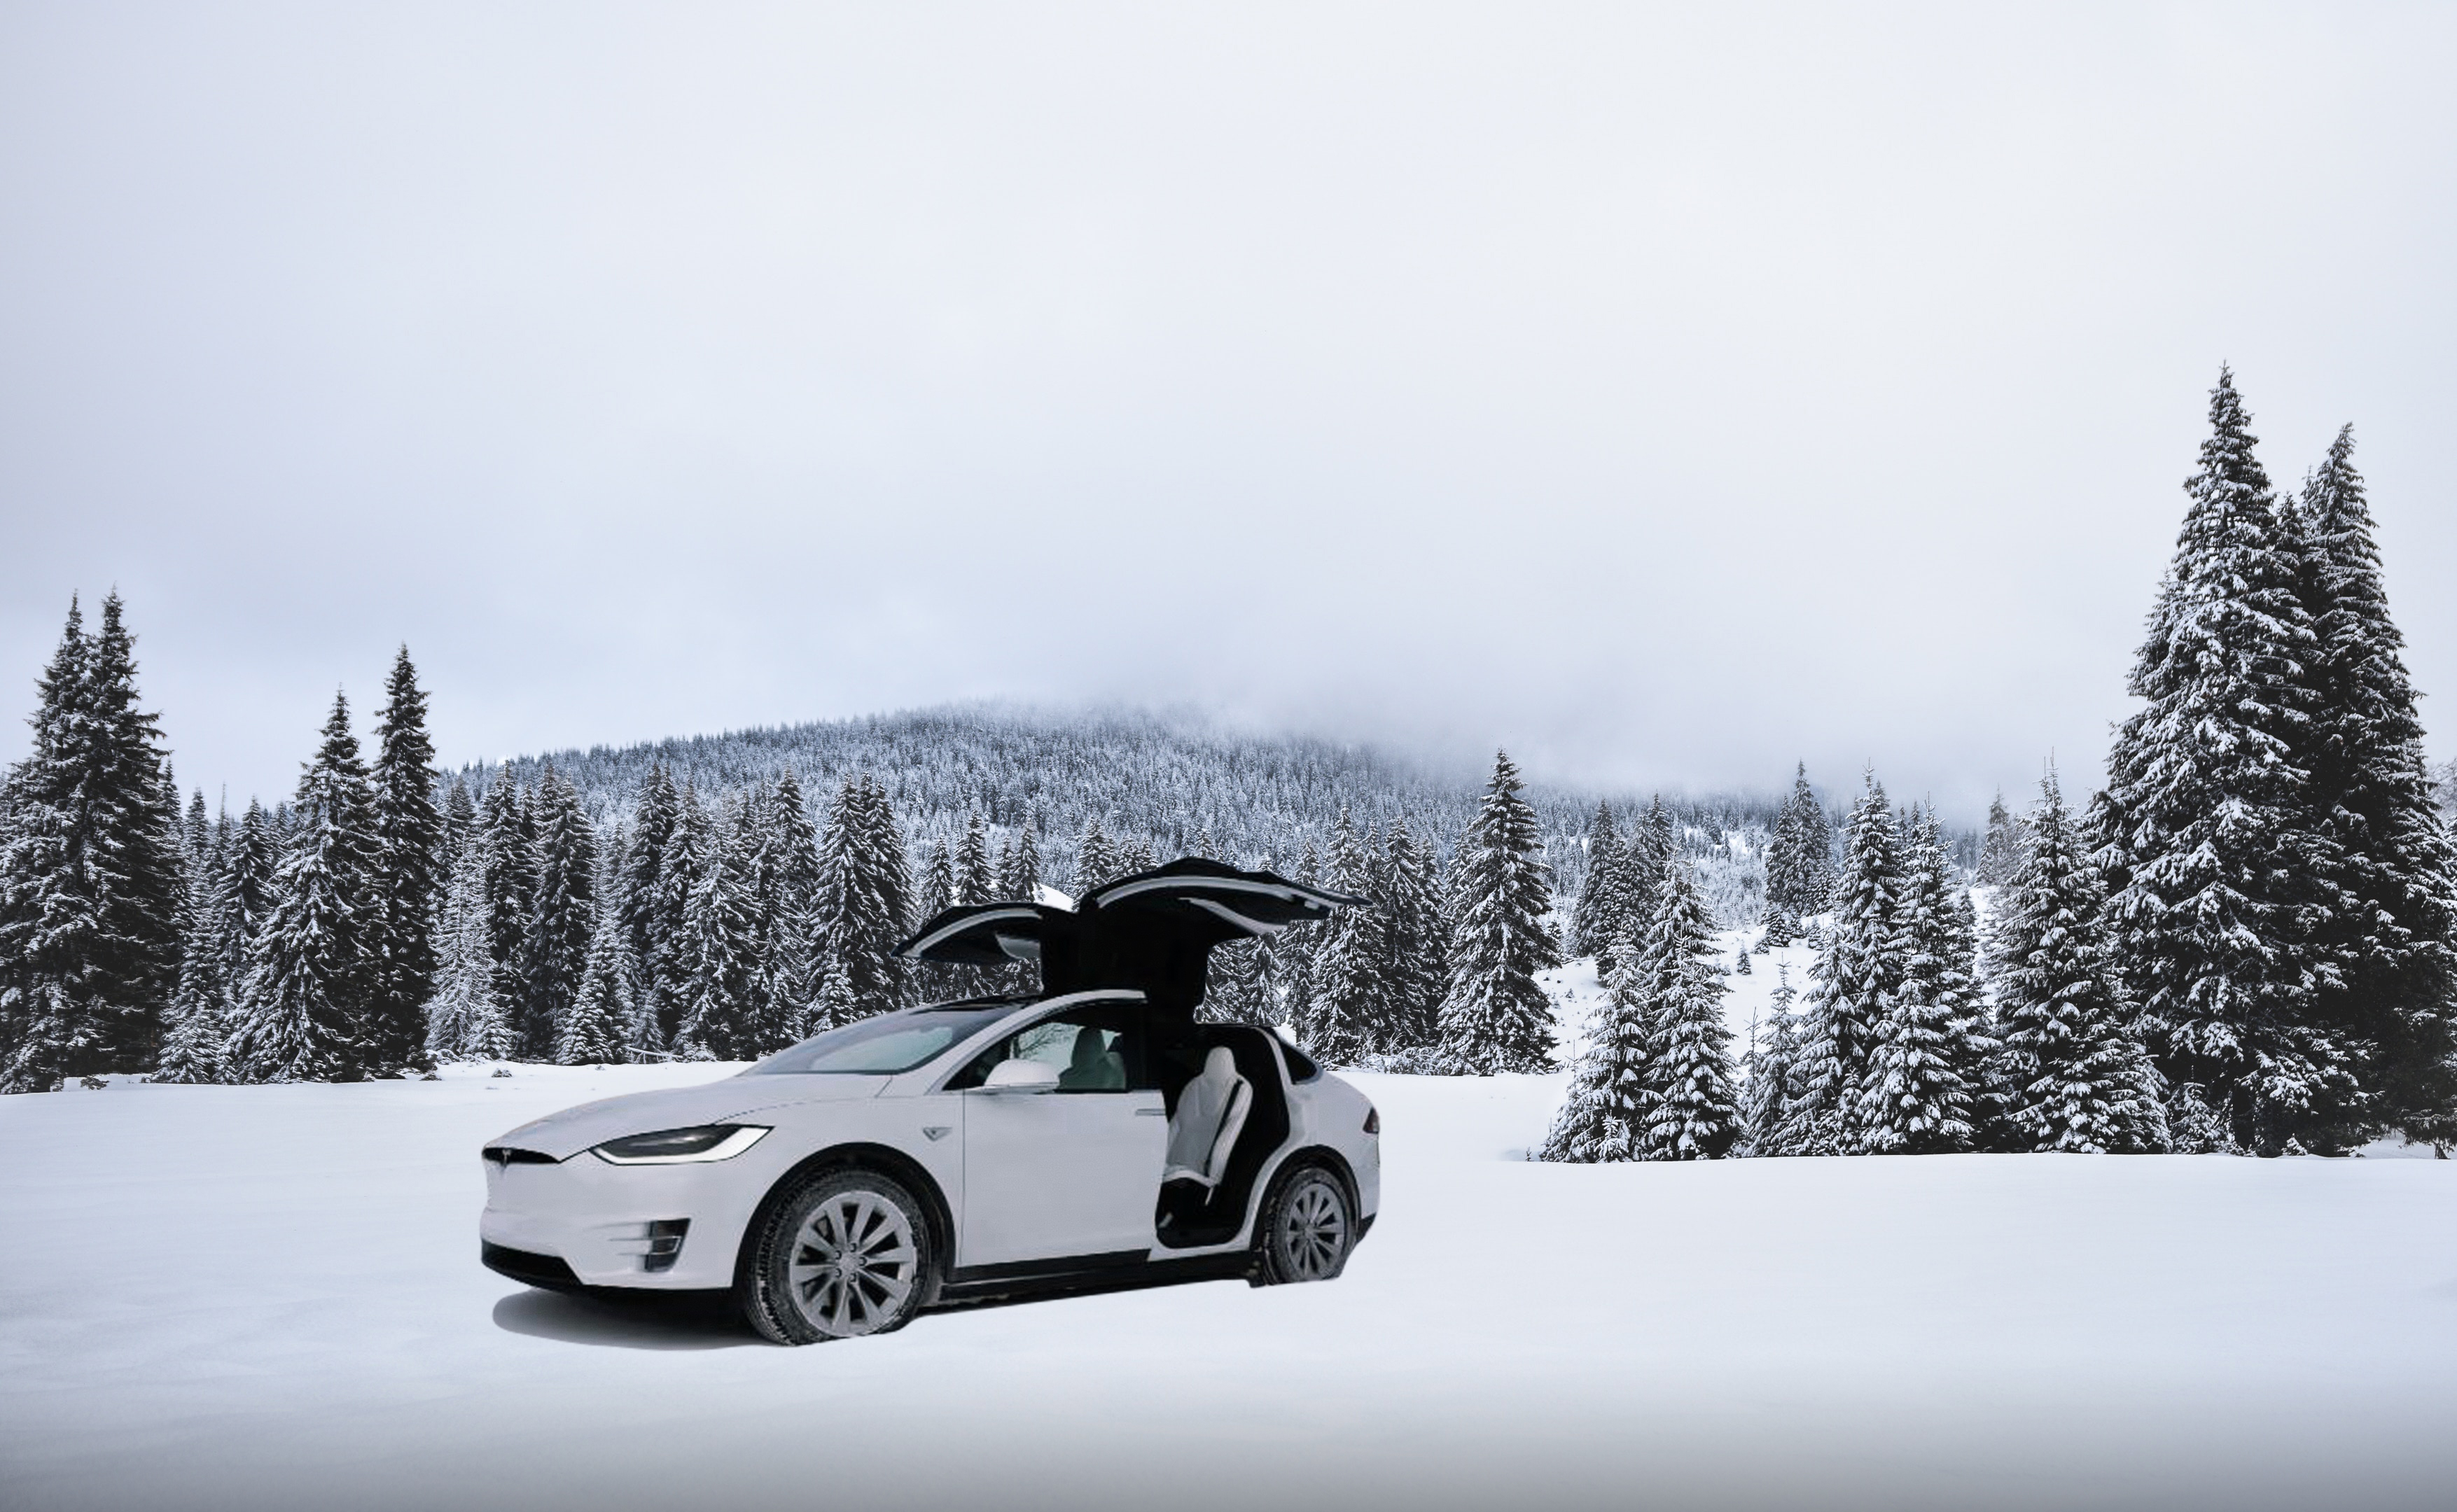 White Model X in snow and pine trees